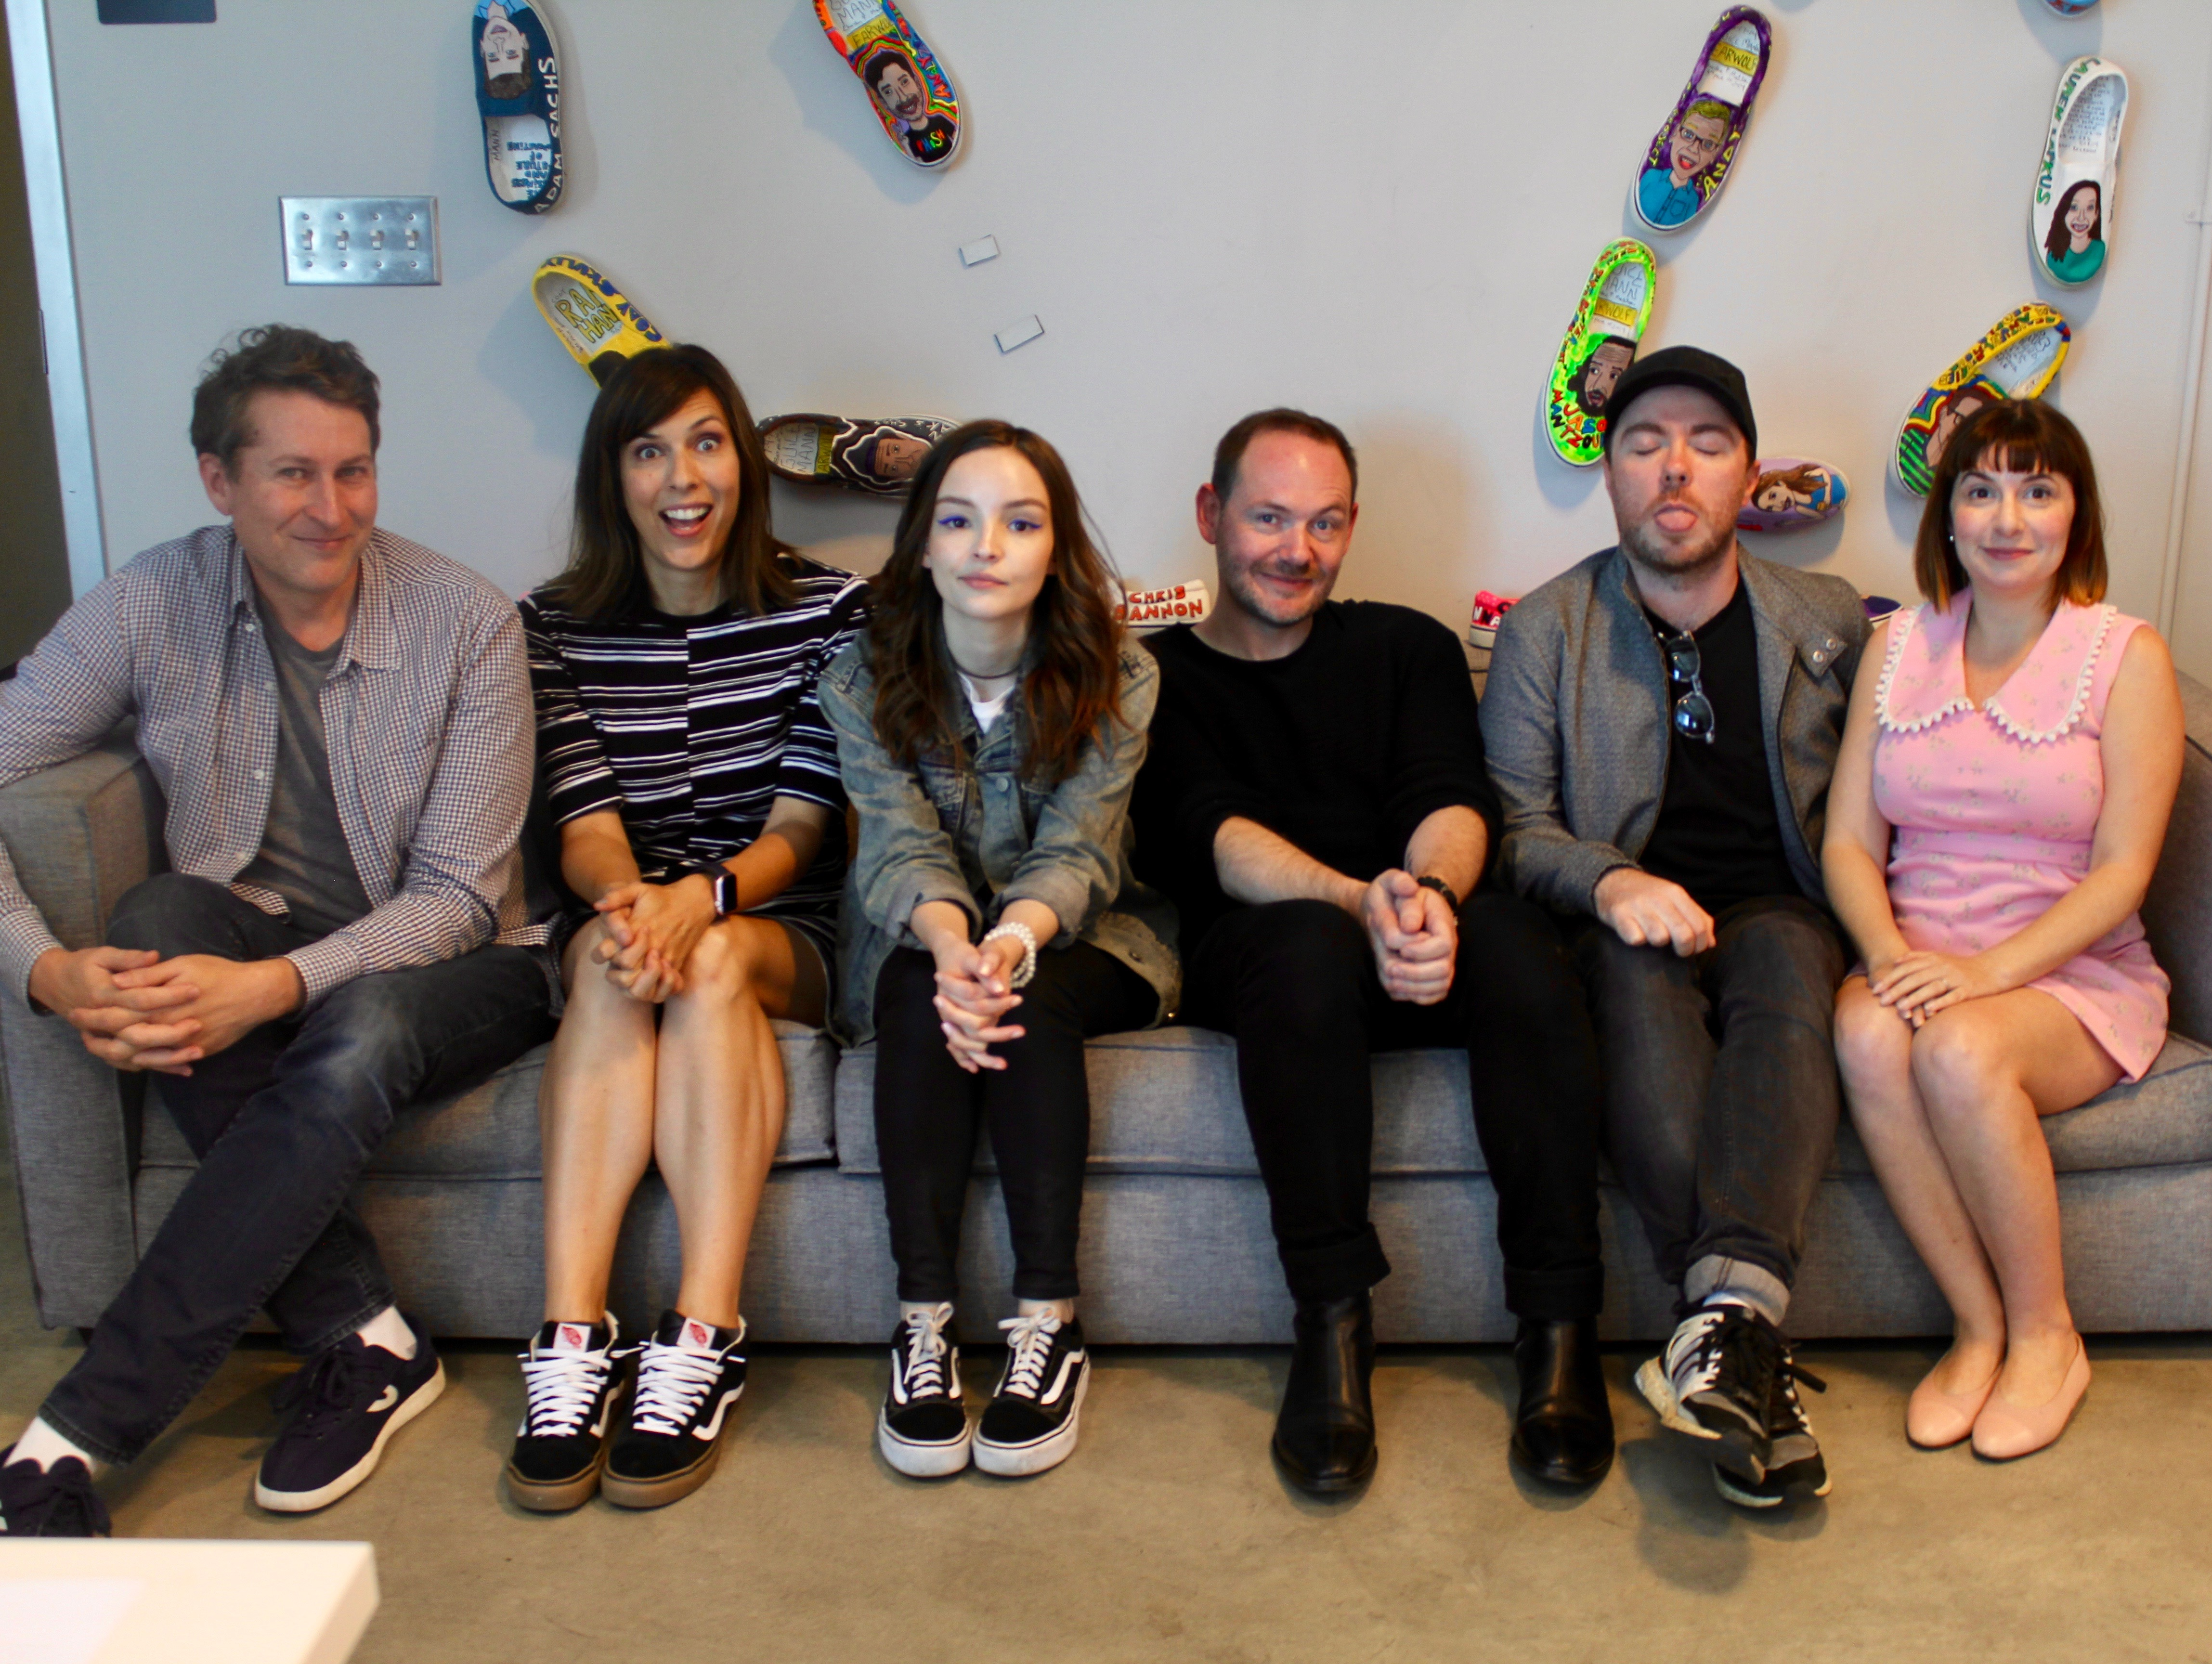 where you come from with chvrches, episode #563 of comedy bang bang